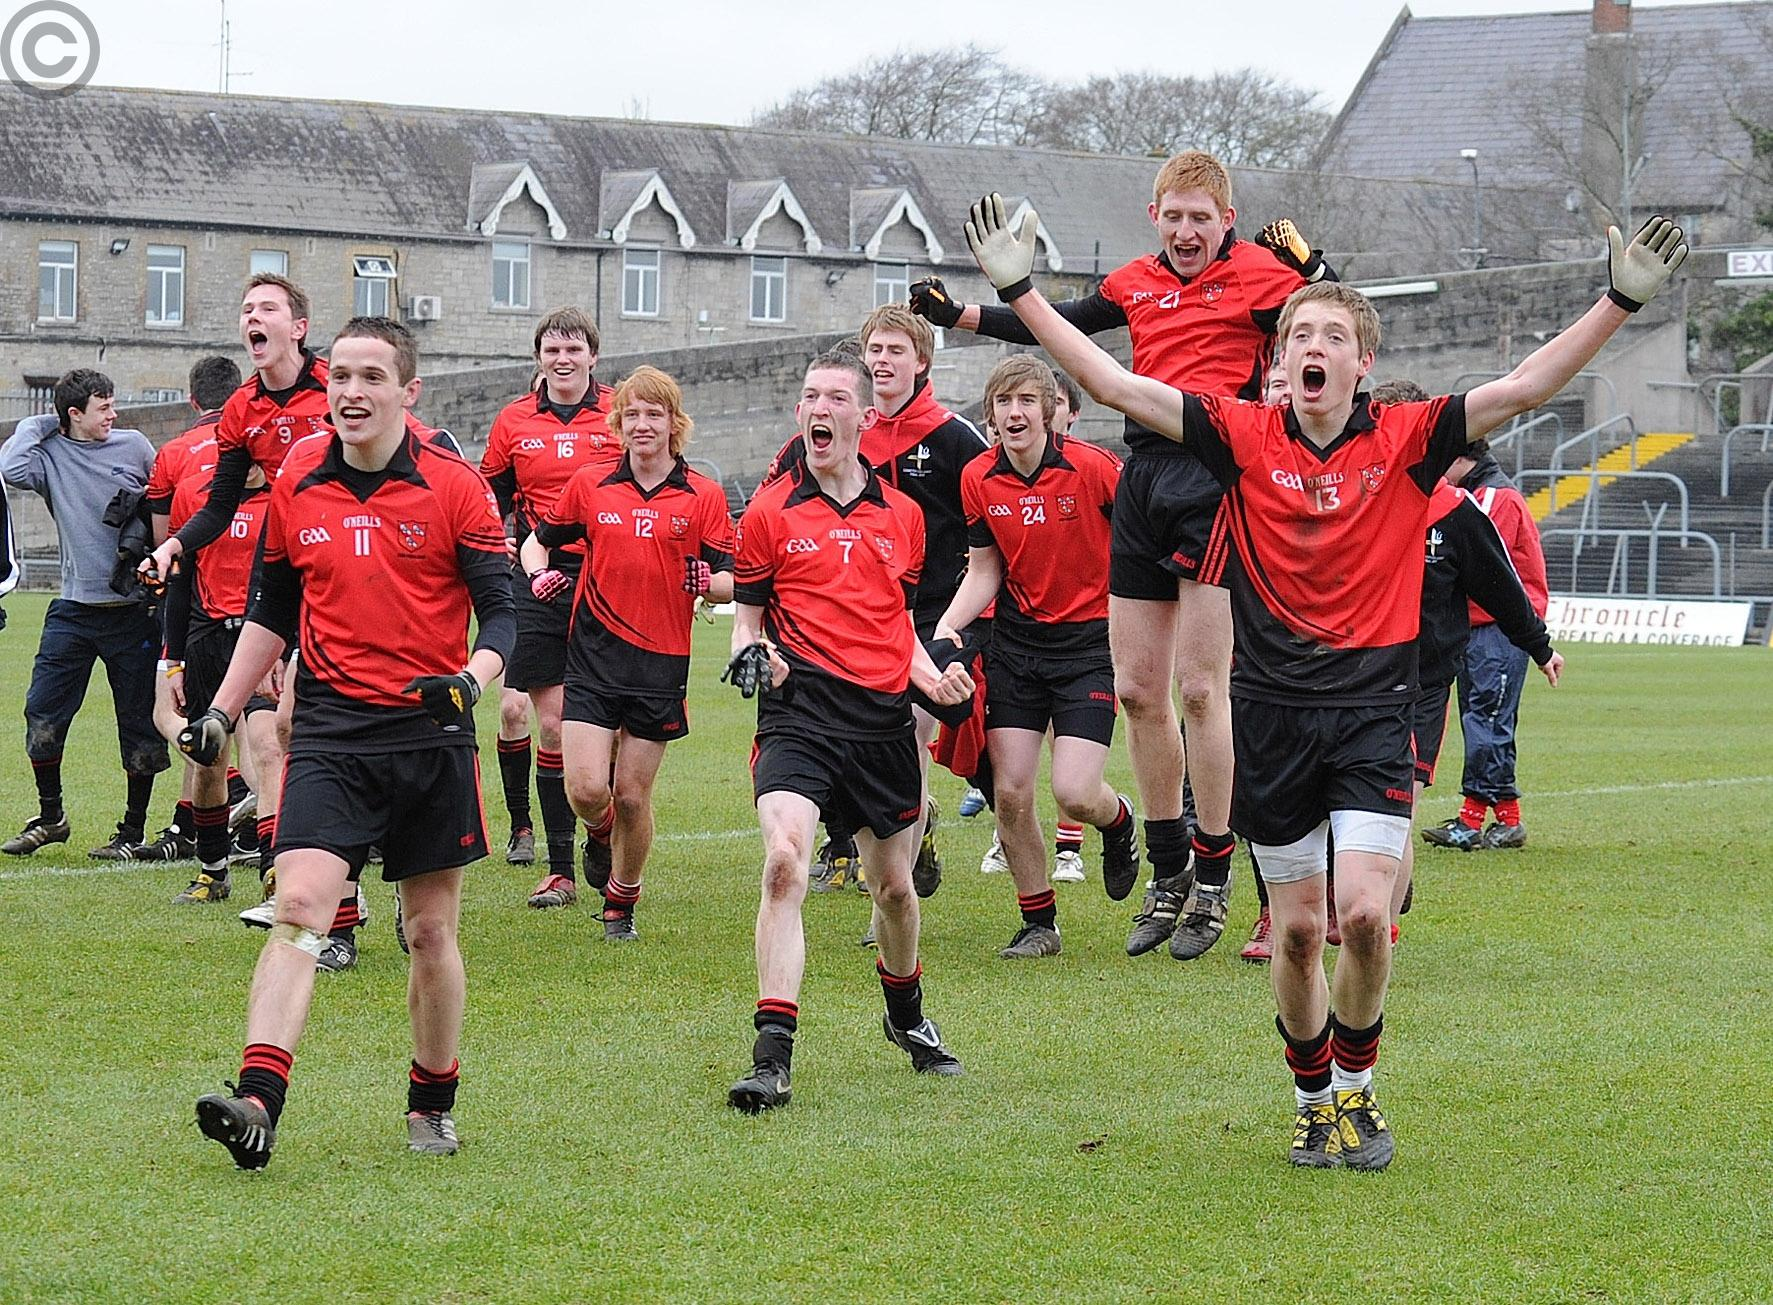 Central Council to discuss Louth `relegation issue